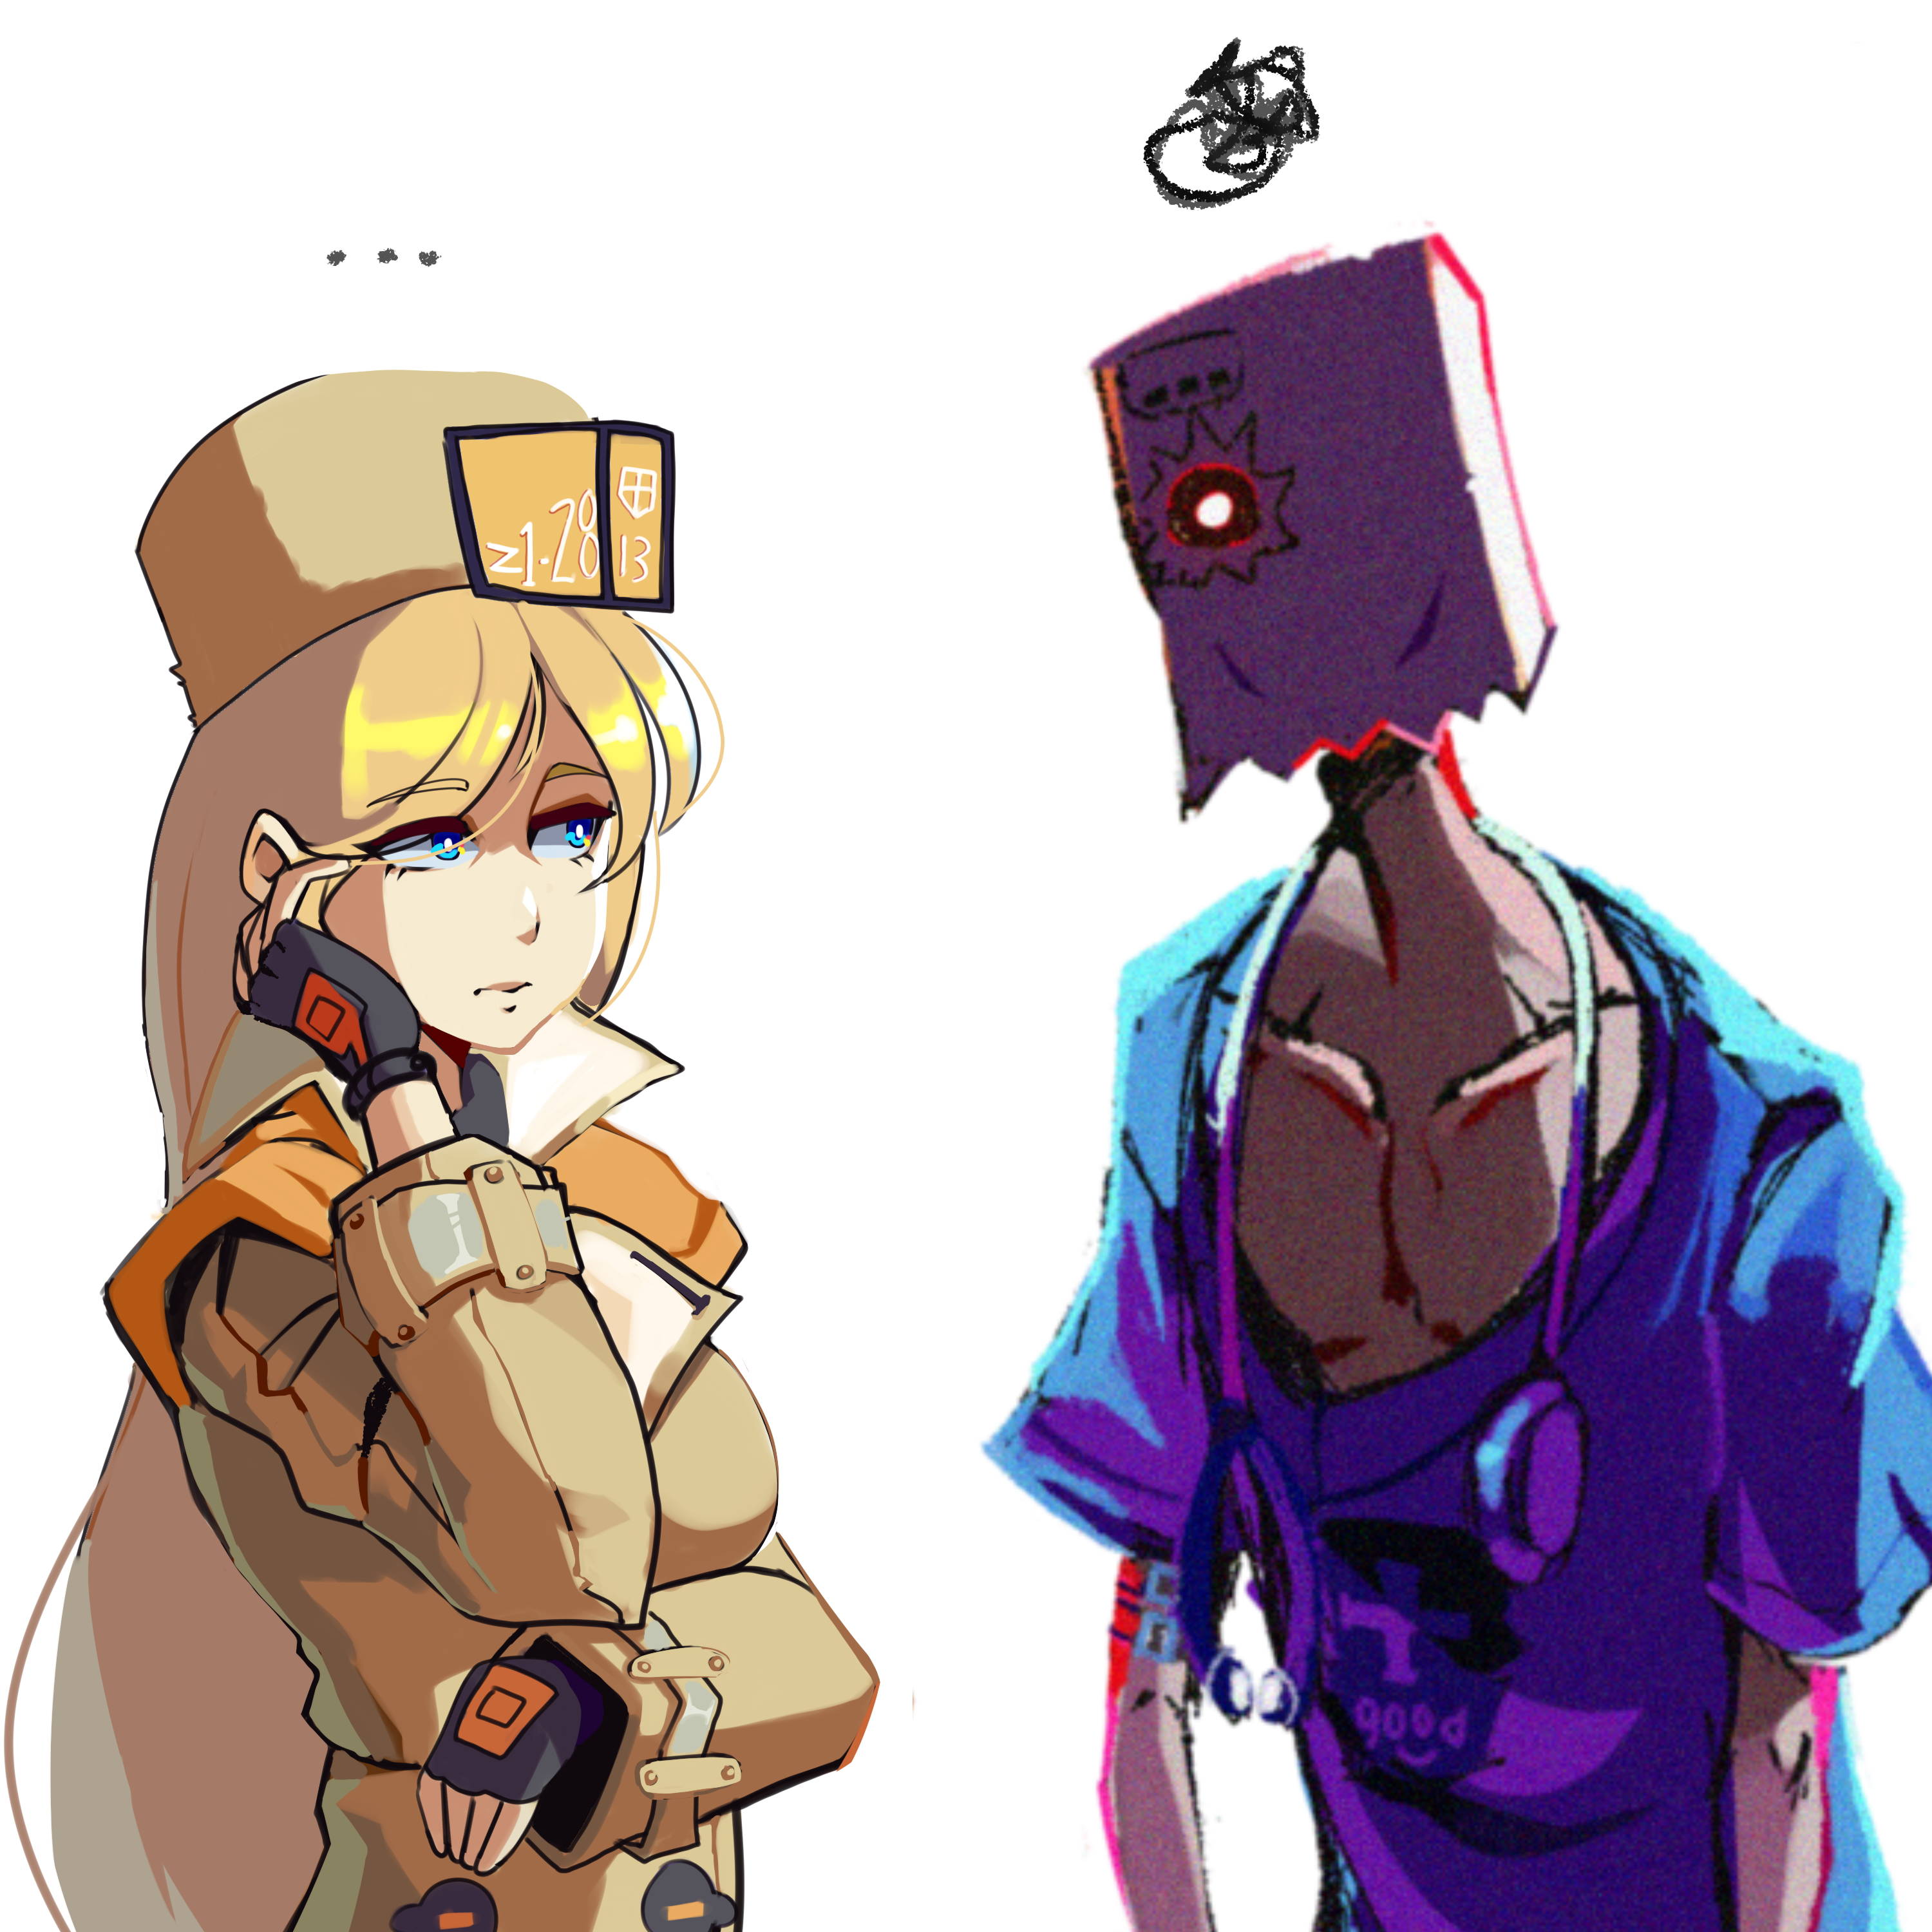 Millia and Faust